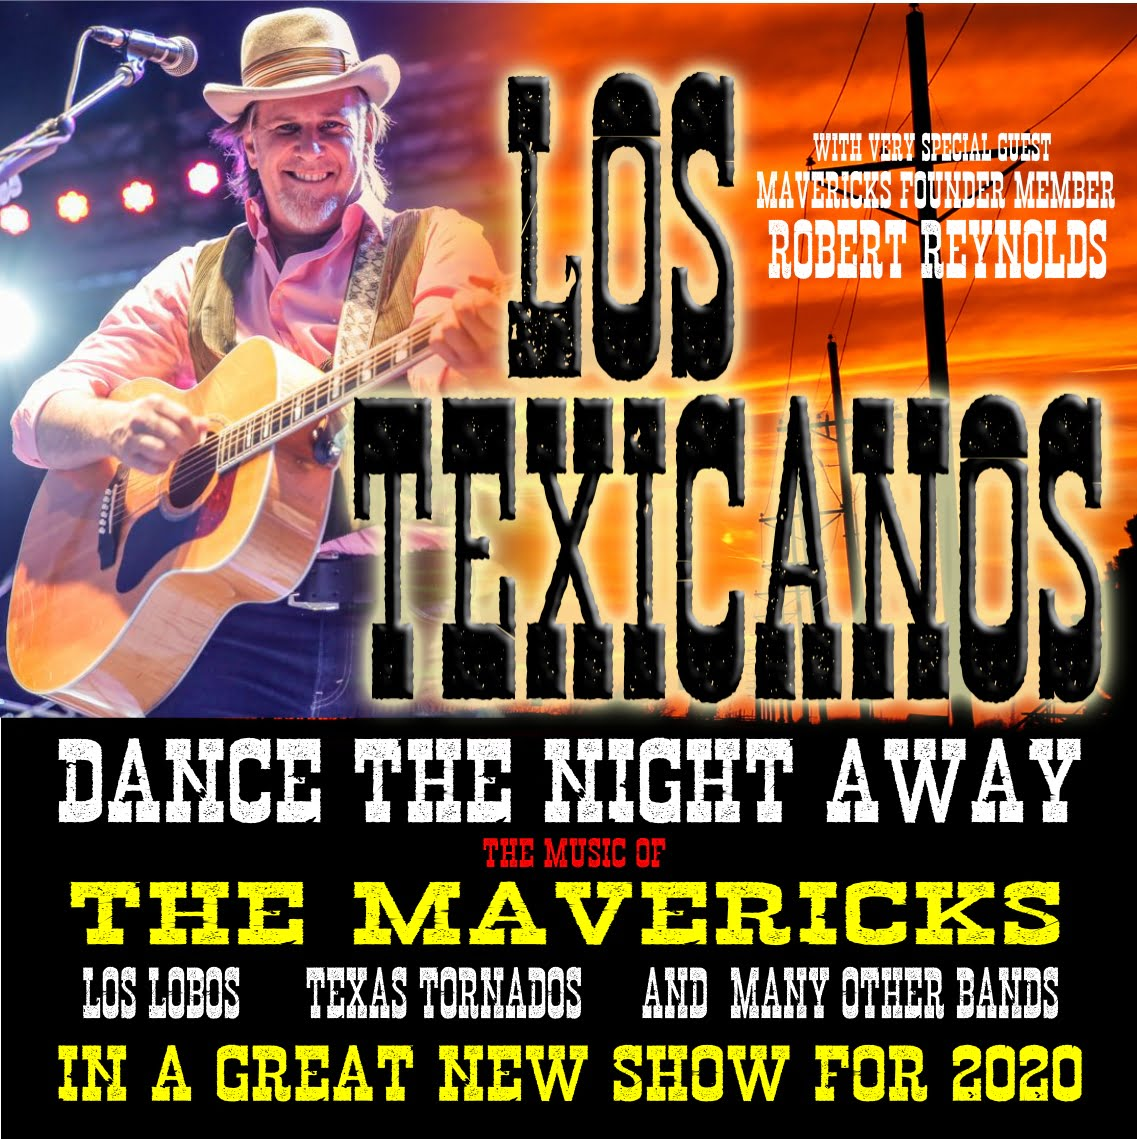 Los Texicanos plus special guest, Robert Reynolds of The Mavericks